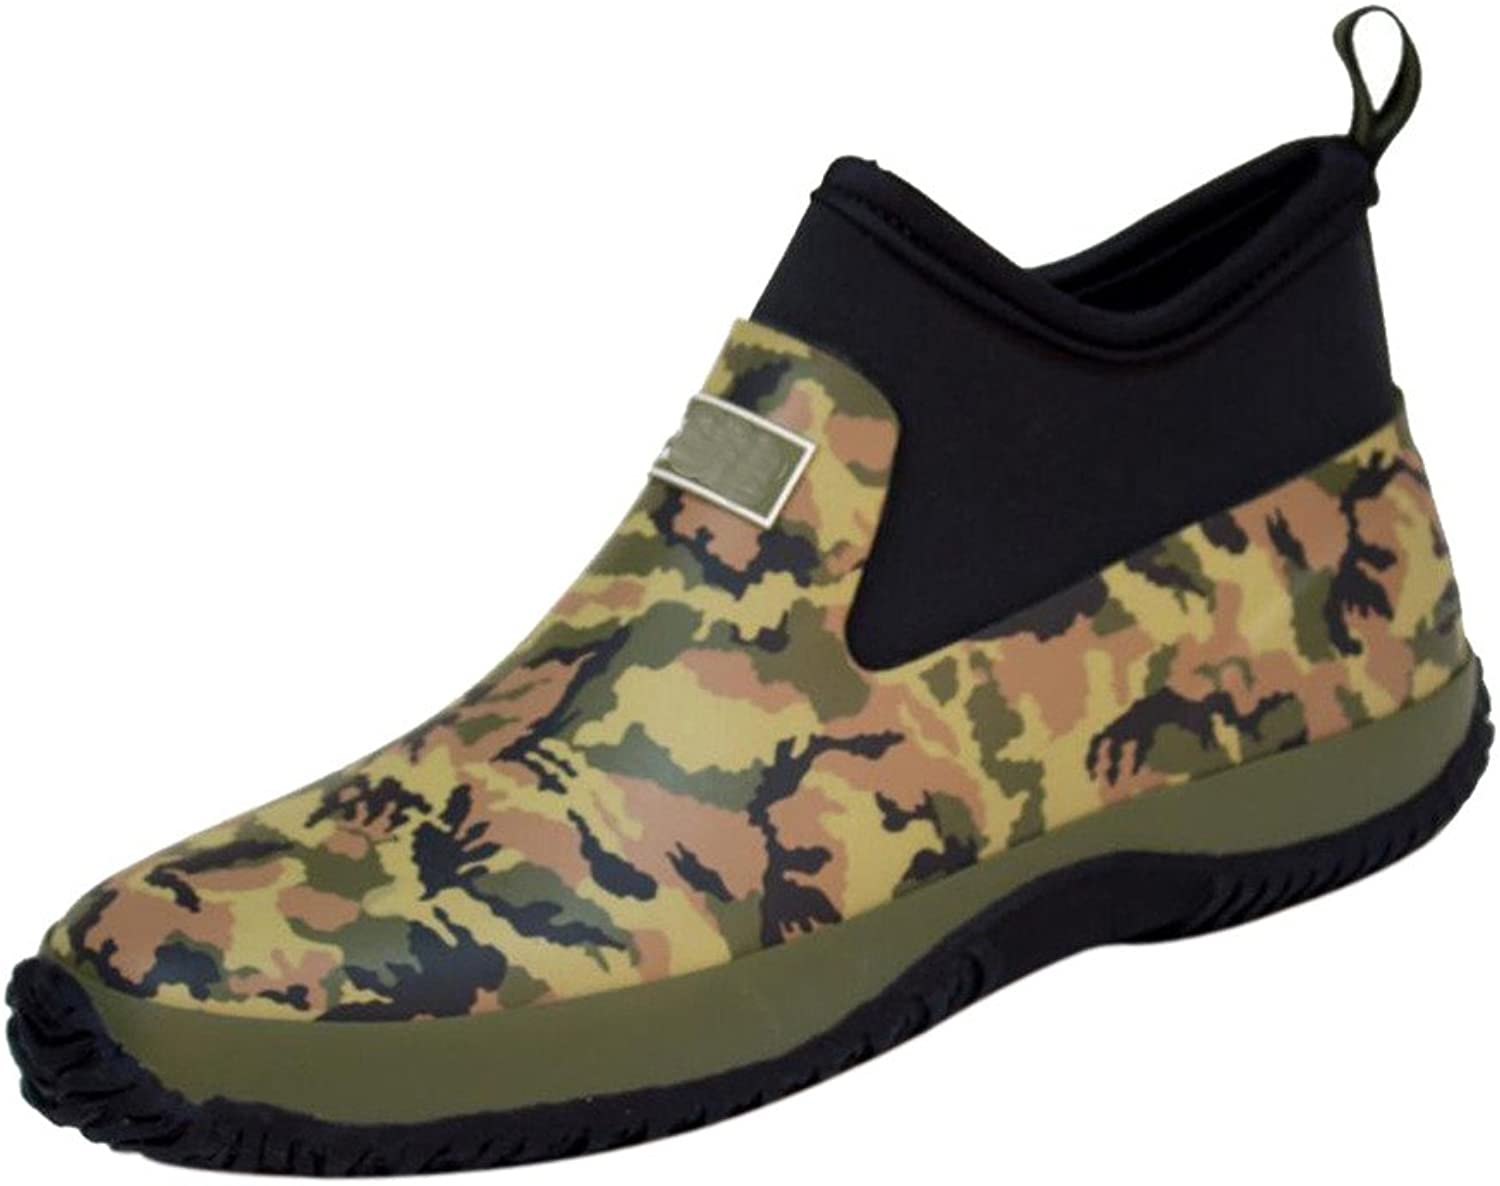 CAMSSOO Women's Men's Anckle High Anti-skidding Rain Boots shoes with Comfort Insole